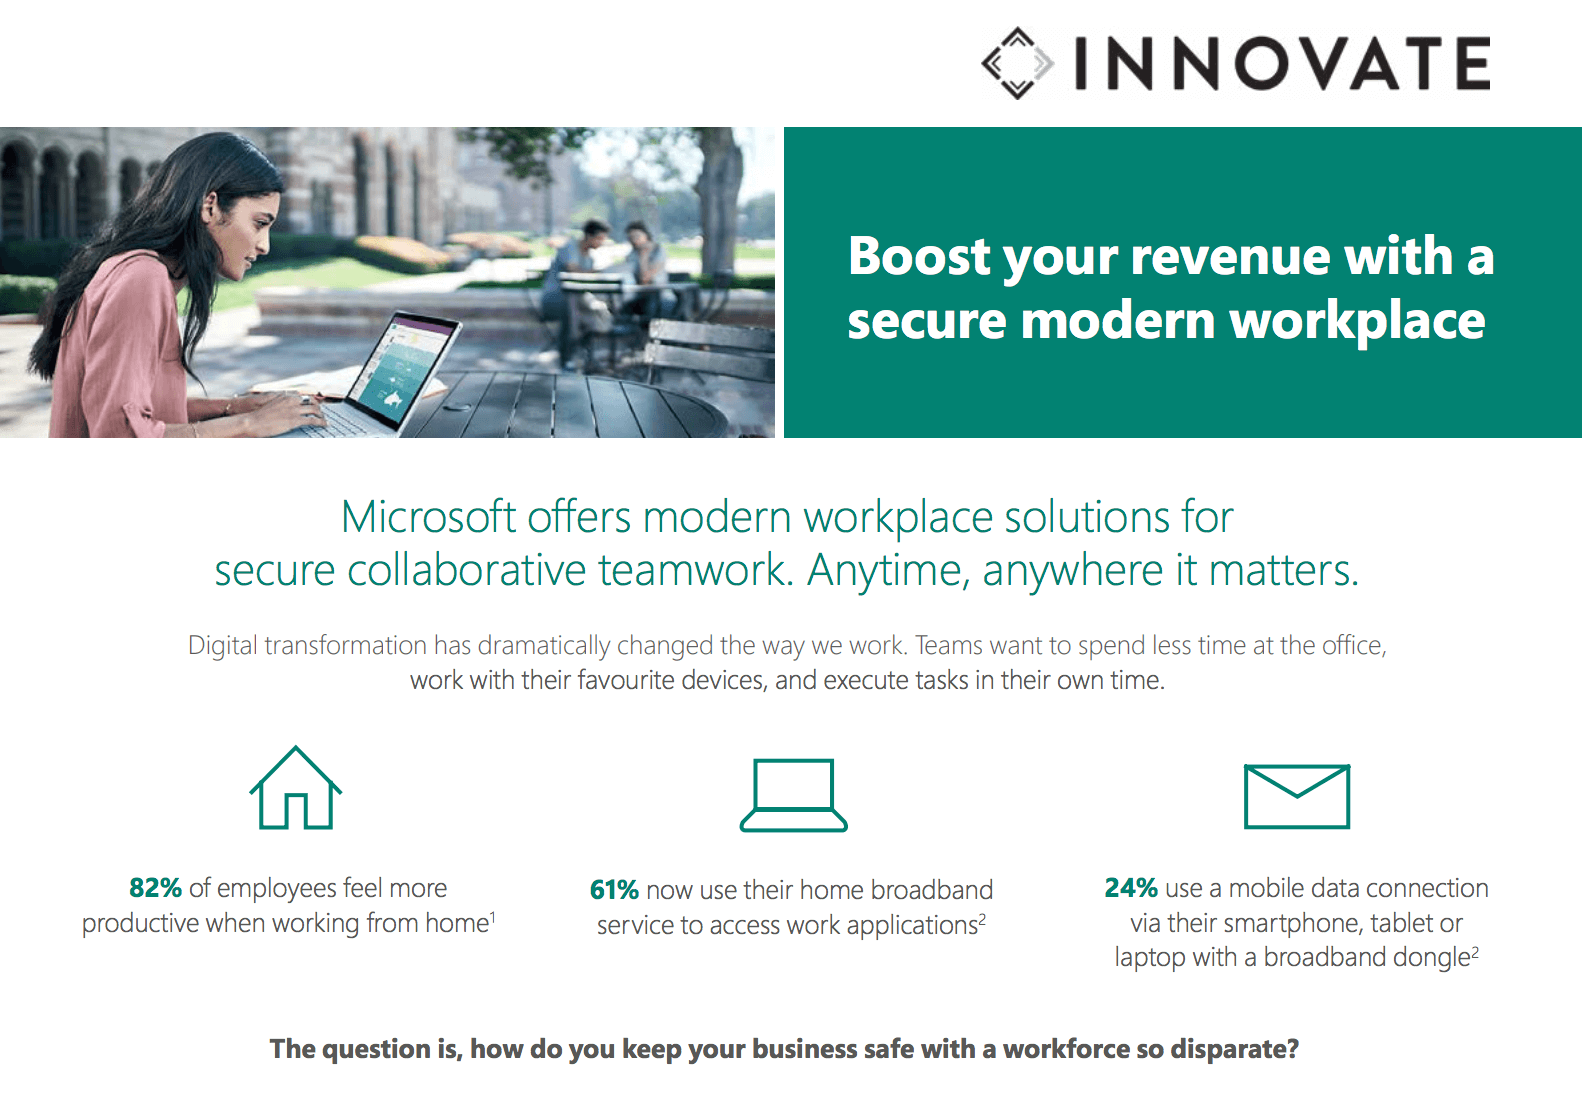 INNOVATE - Blog - Boost your revenue with a secure modern workplace - image